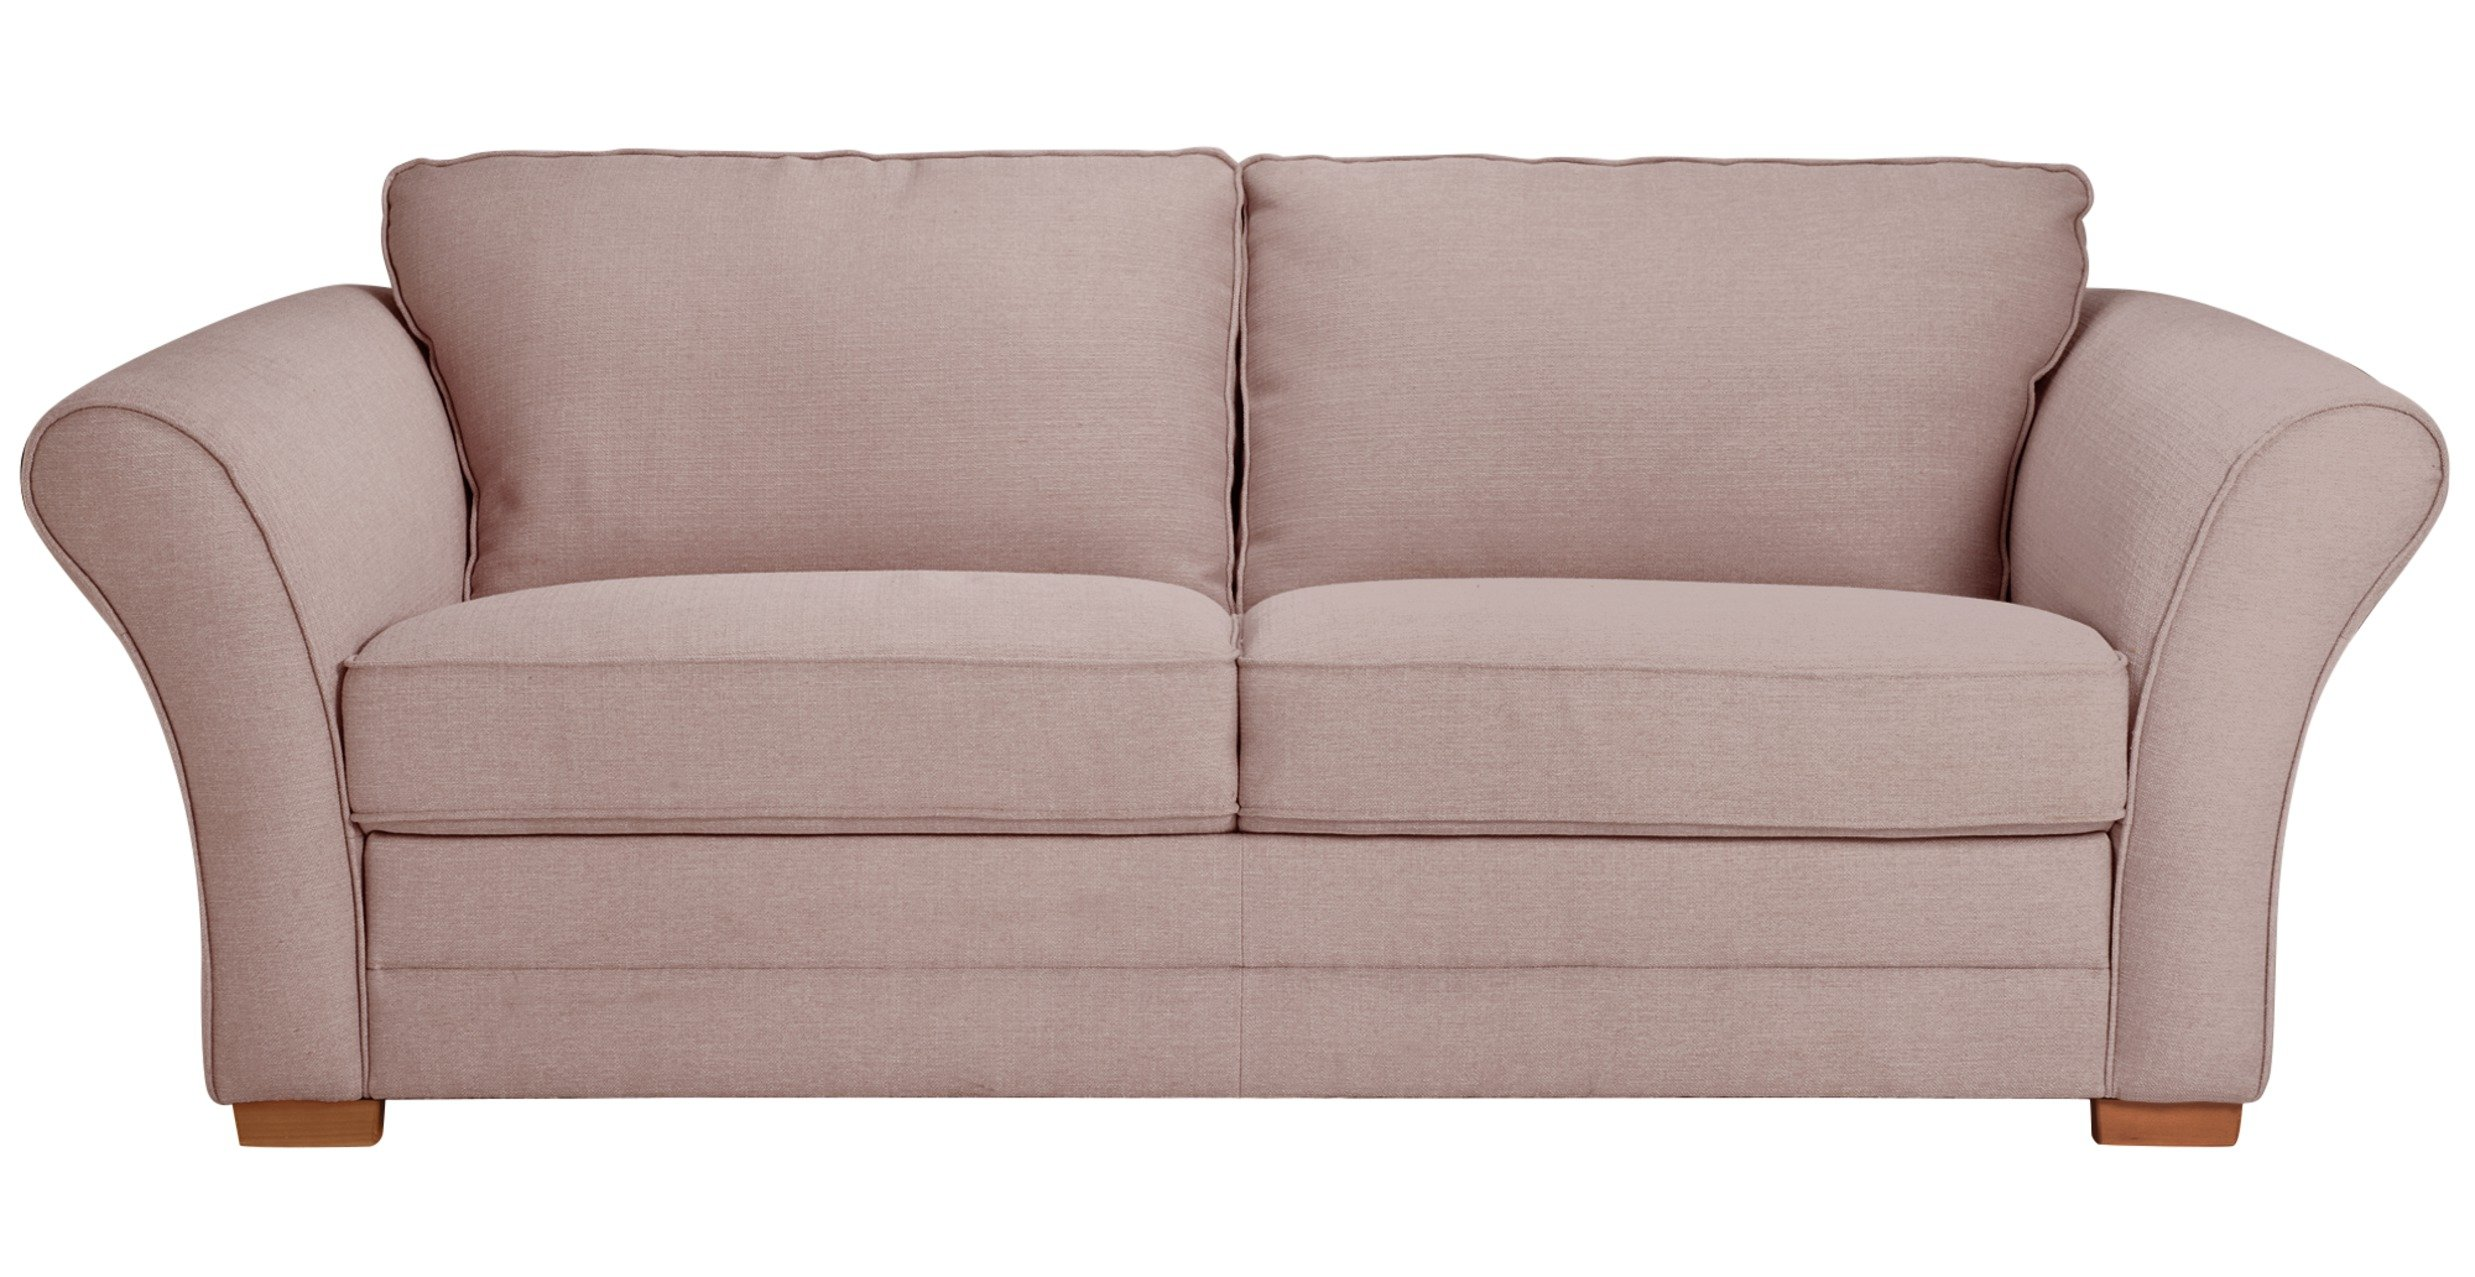 Argos Home Thornton 3 Seater Fabric Sofa Bed - Old Rose